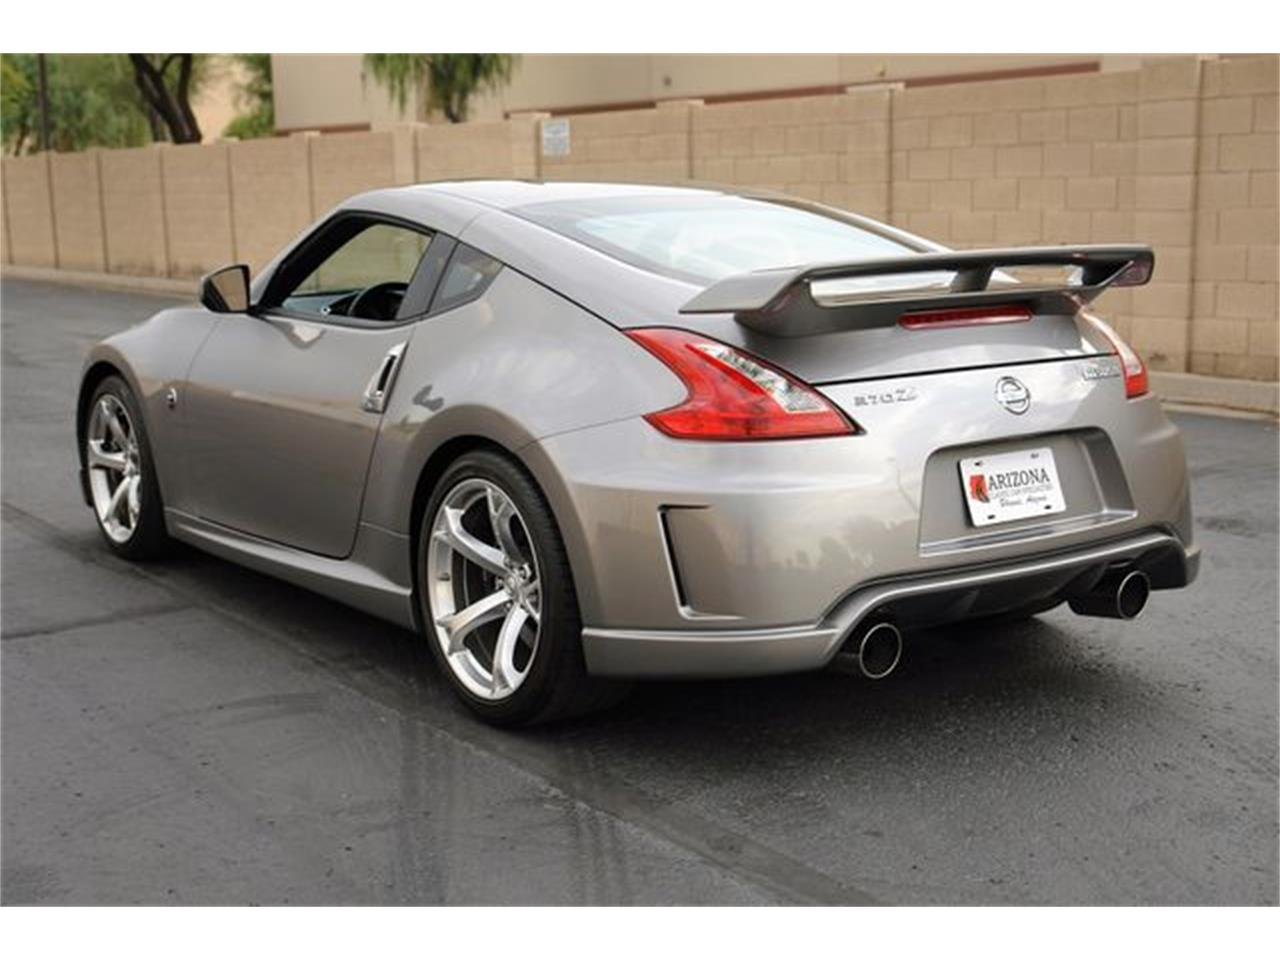 Large Picture of '10 Nissan 370Z located in Phoenix Arizona - $29,950.00 - LFC6